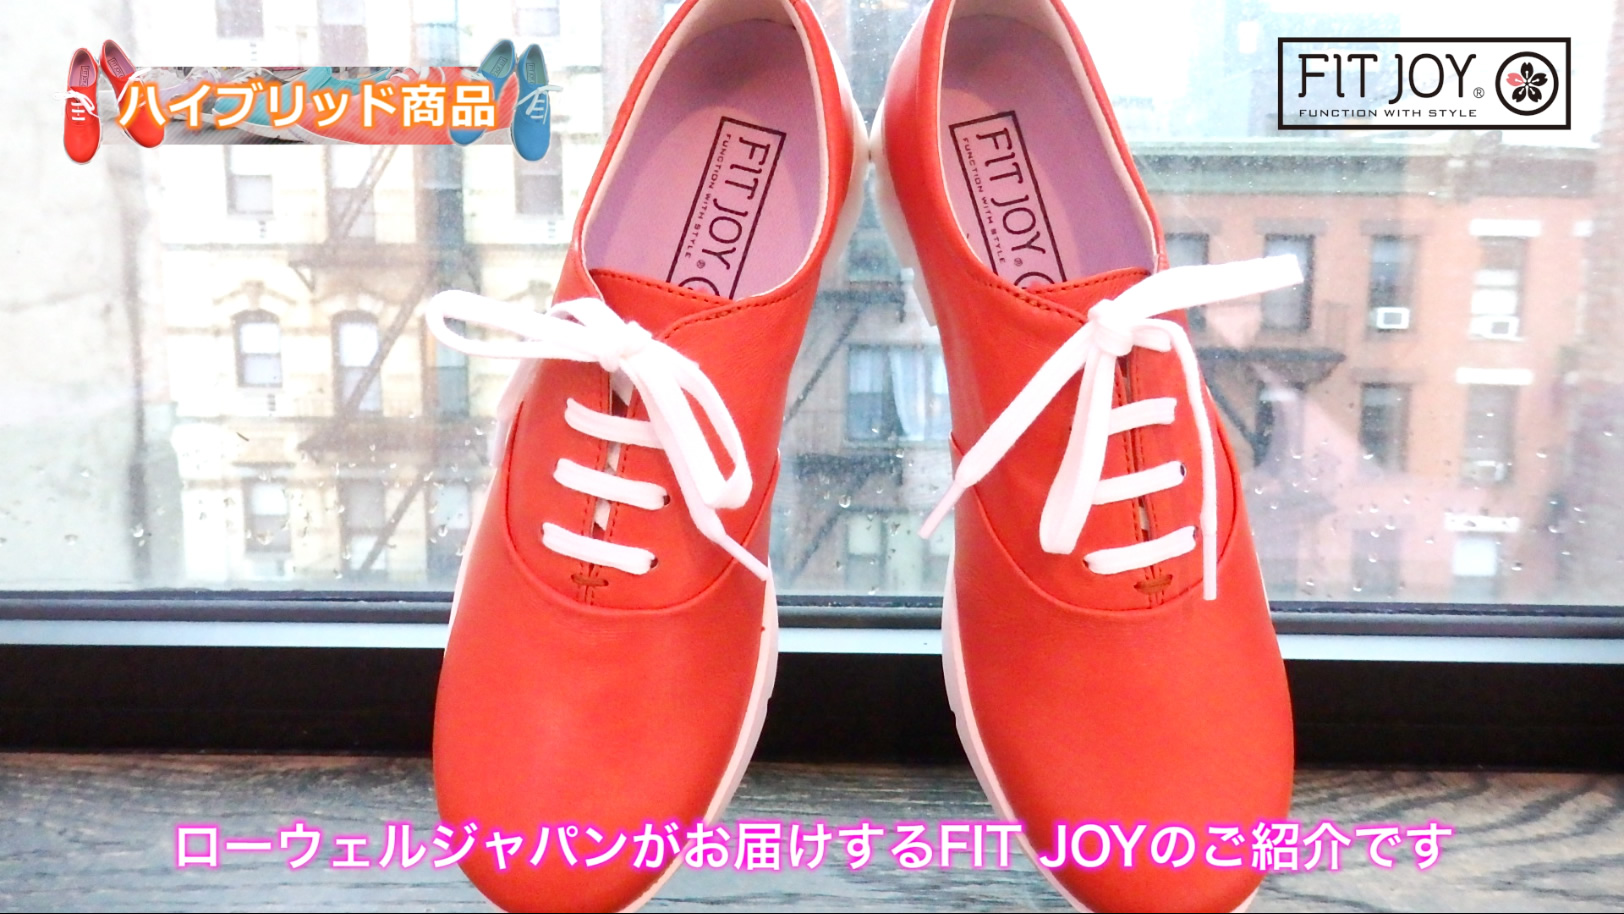 FIT JOY 2017SS Video - products